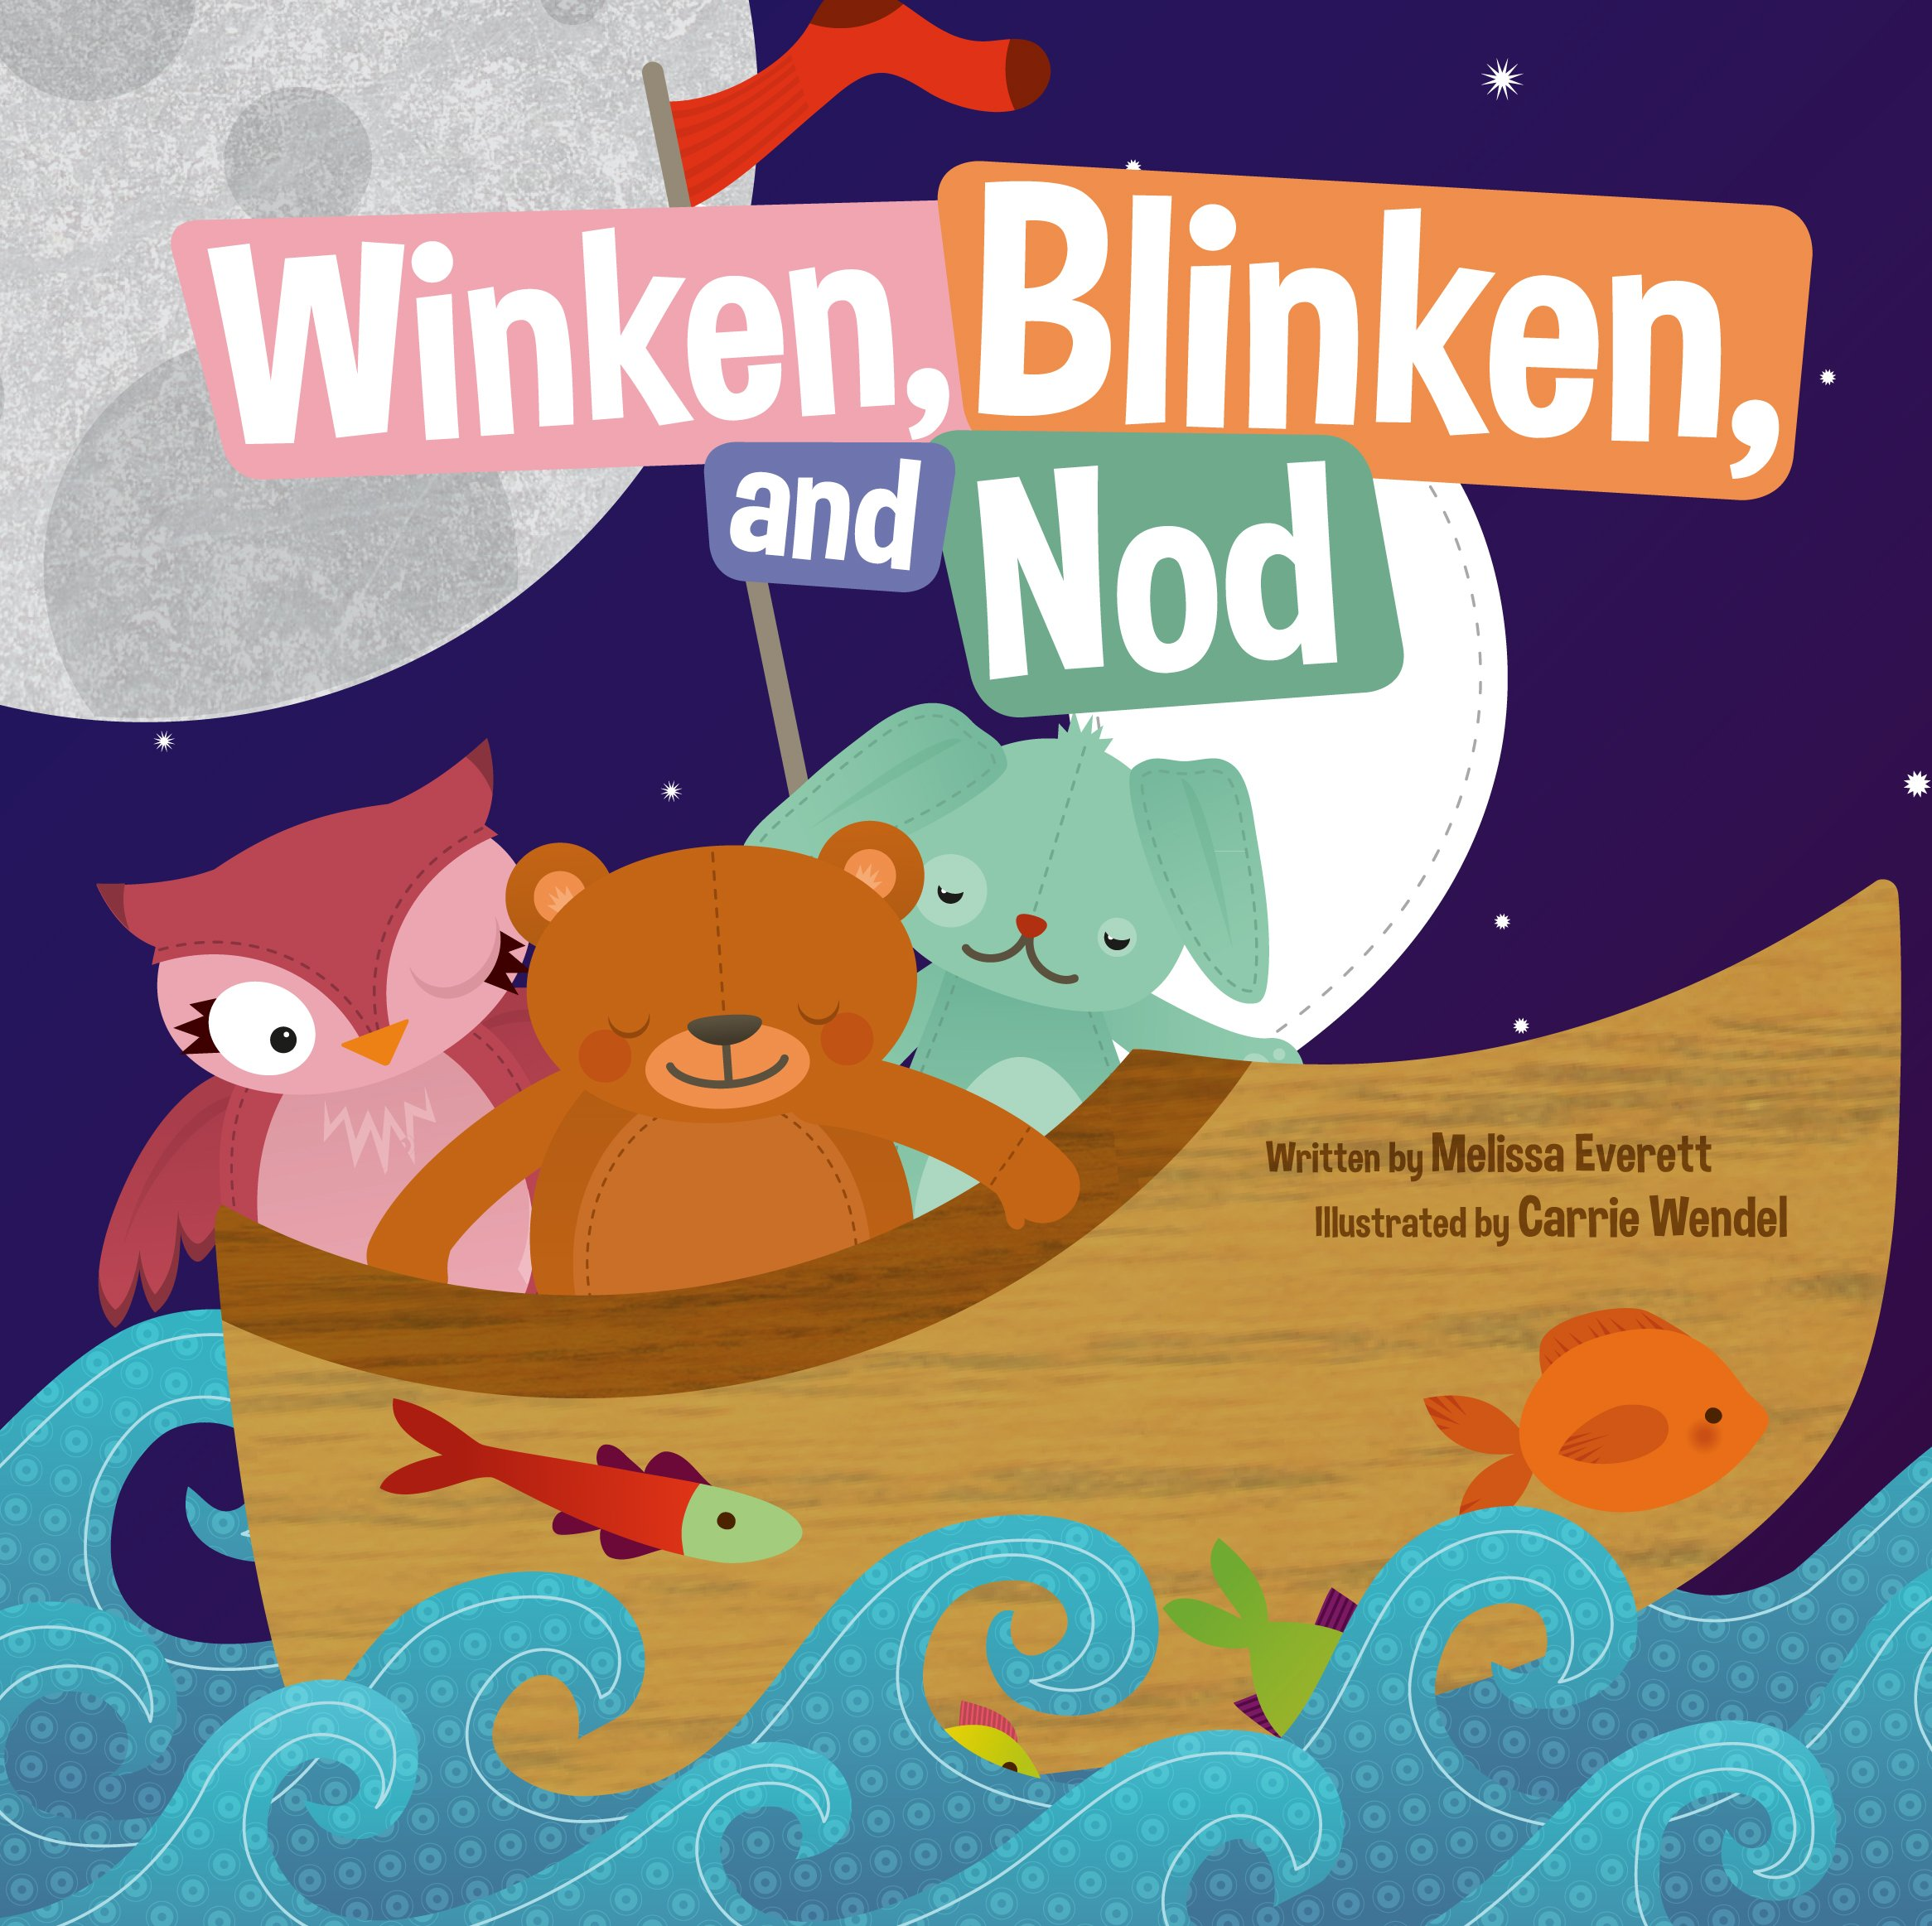 Amazon.com: Winken Blinken and Nod (Nursery Rhymes) (Re-Versed ...